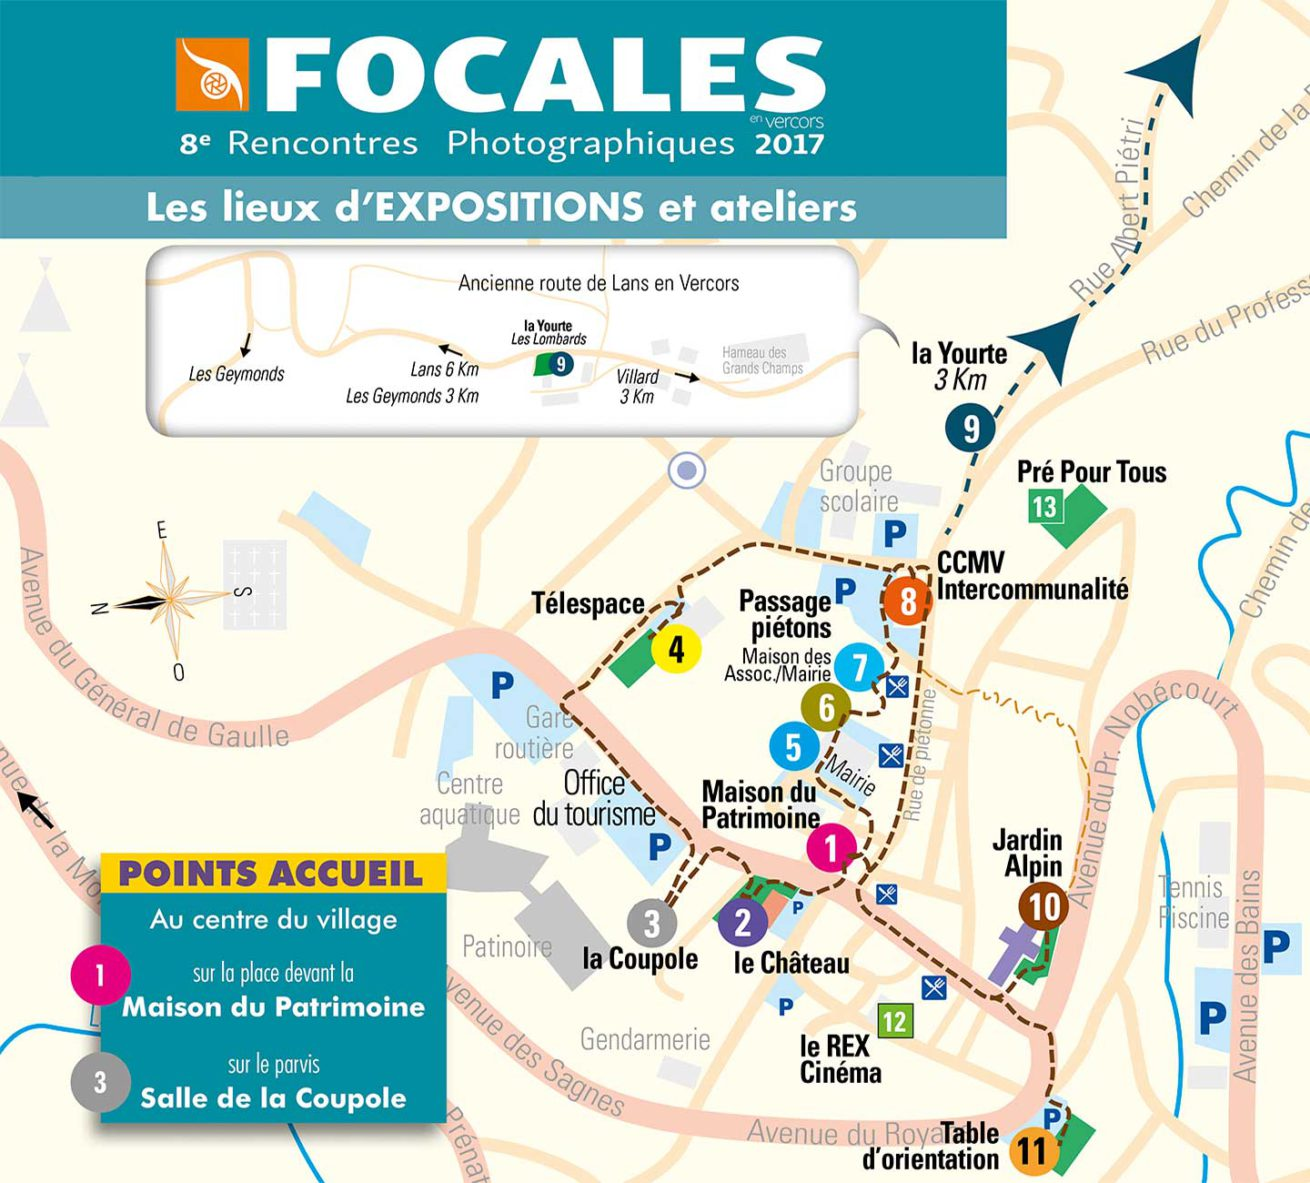 Photo festival Focales en Vercors, practical information